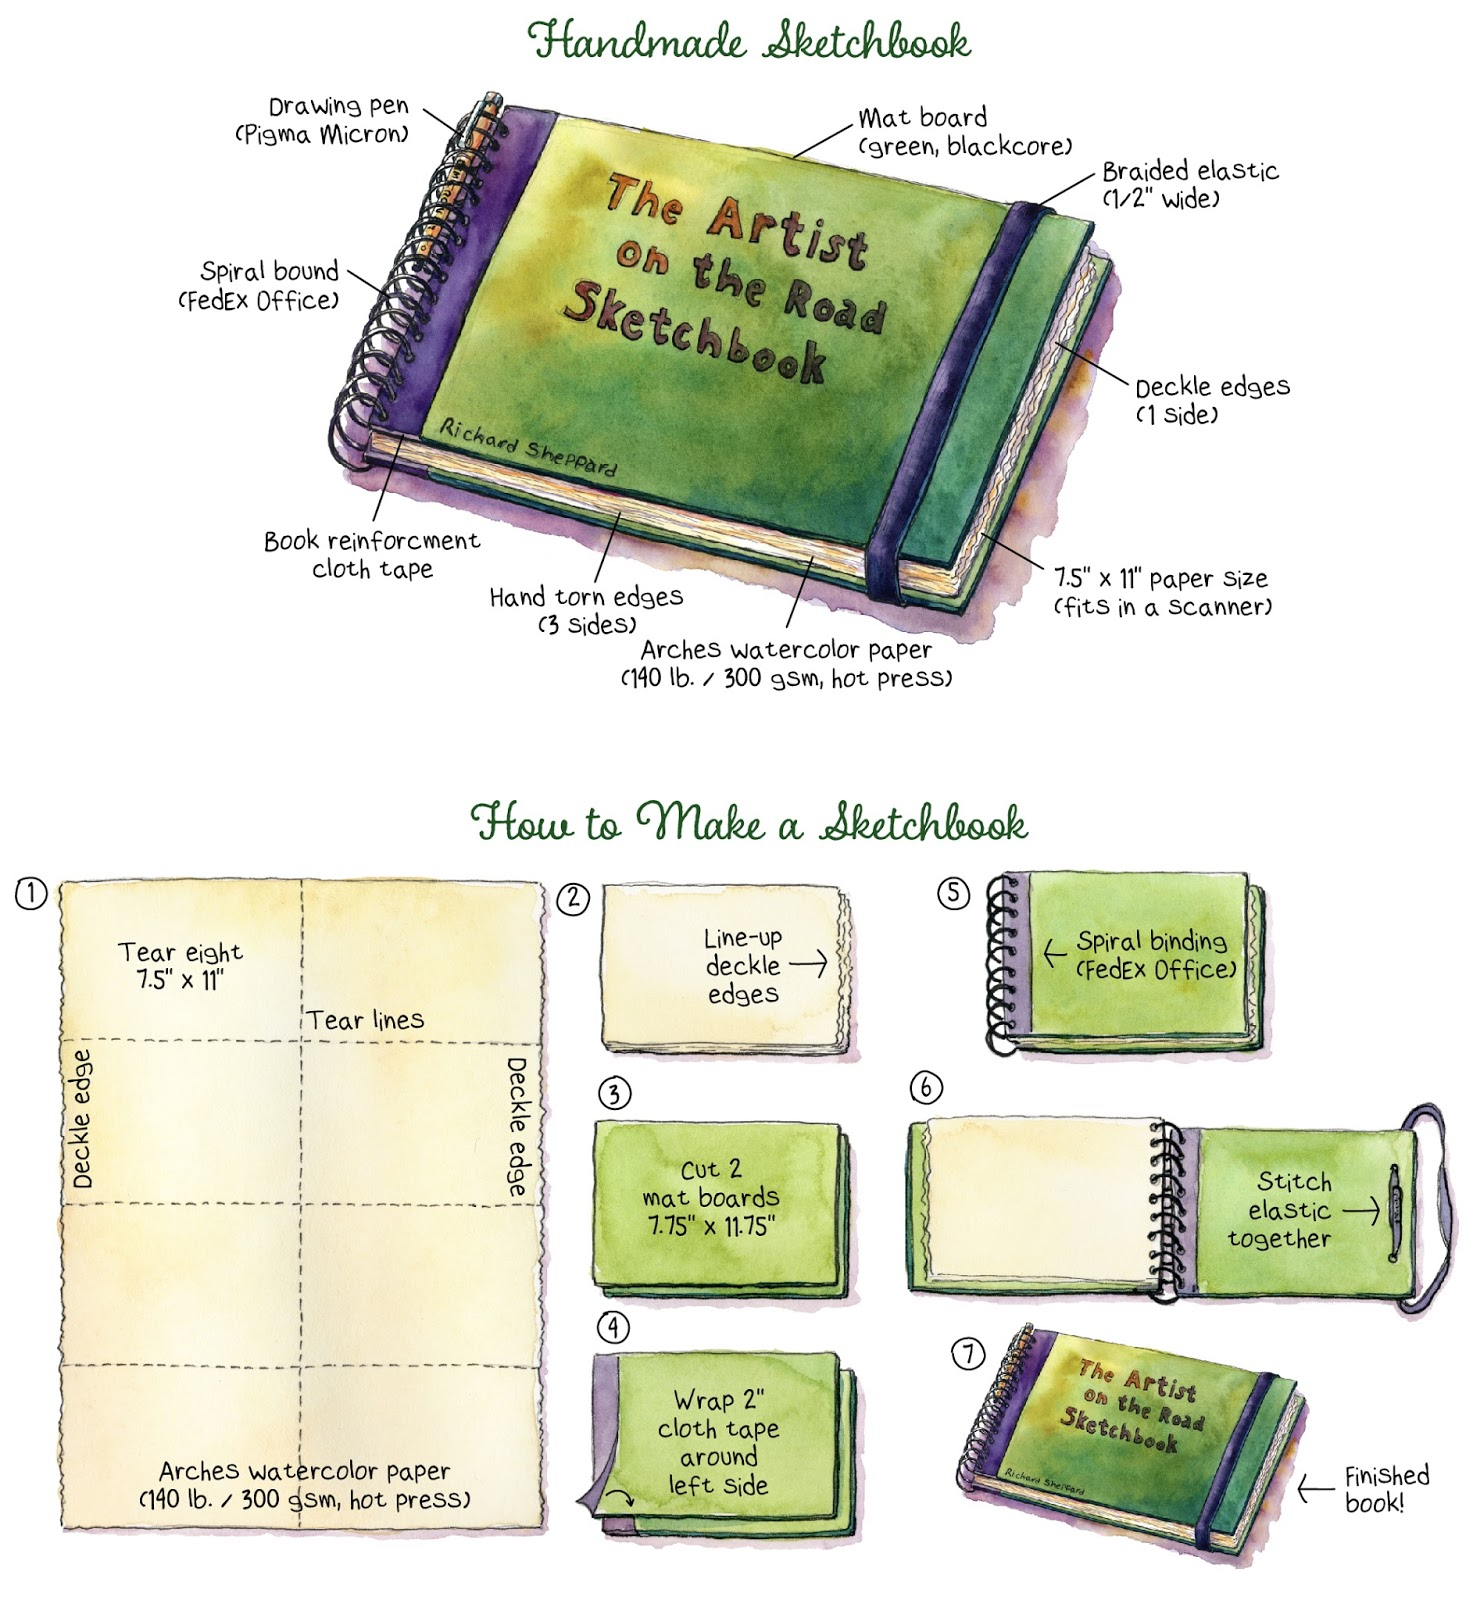 Discussion on this topic: How to Create a Sketchbook, how-to-create-a-sketchbook/